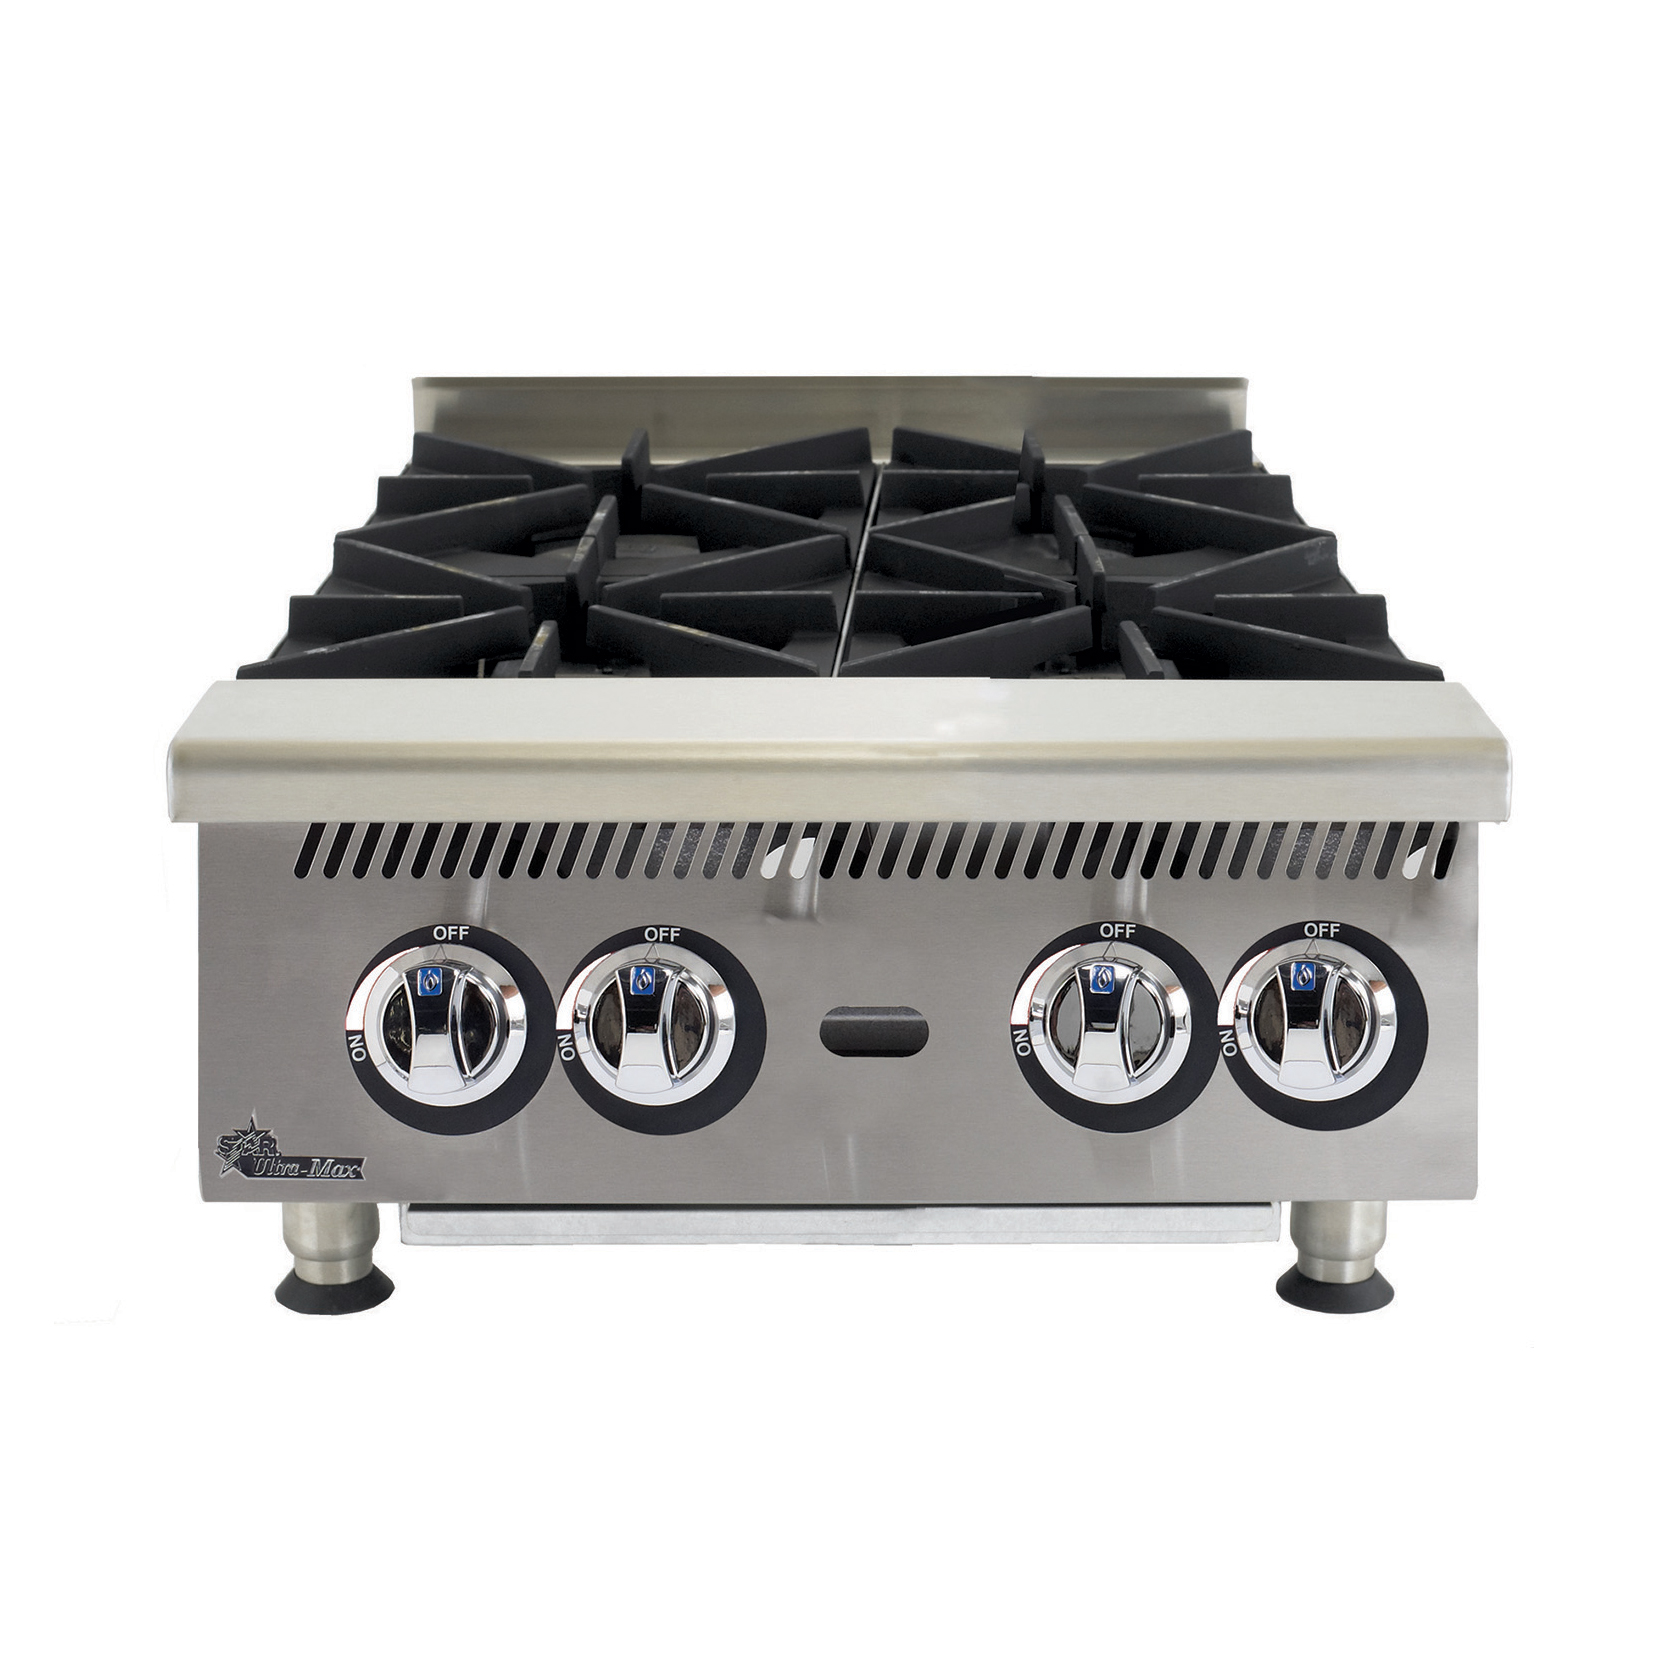 Star 804HA hotplate, countertop, gas